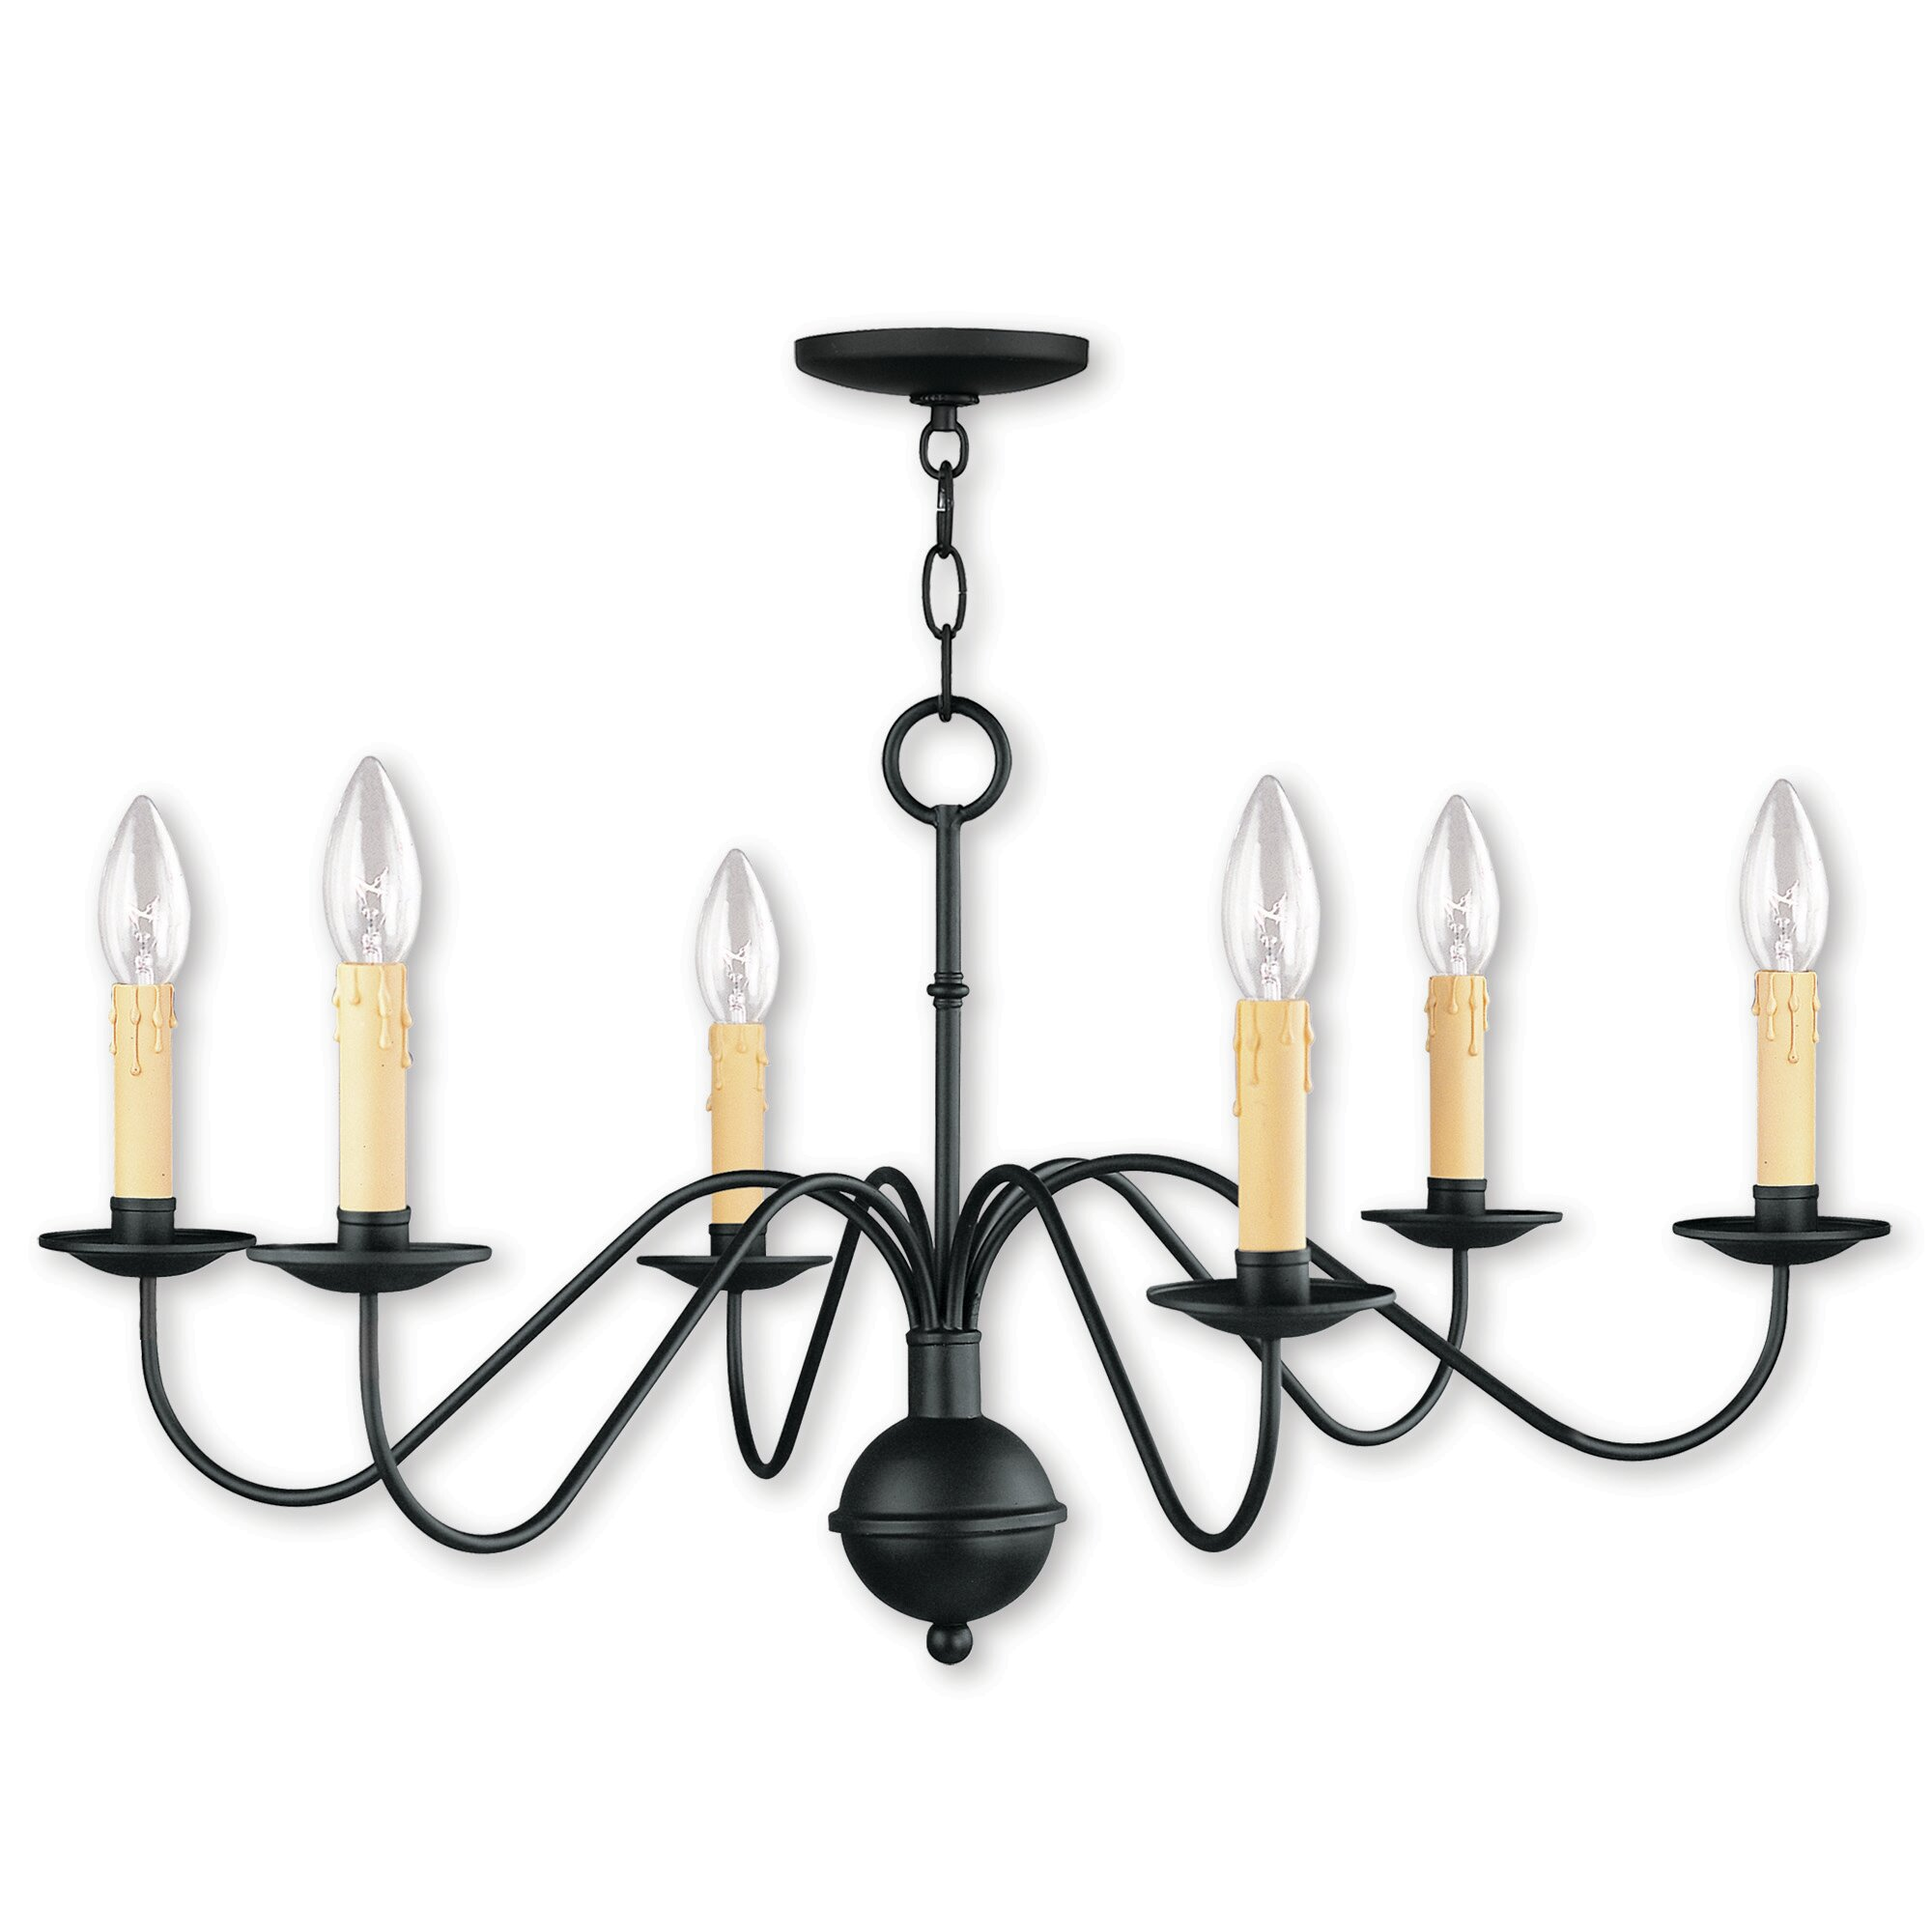 Darby Home Co Eberhart 6 Light Candle Style Classic Traditional Chandelier Reviews Wayfair